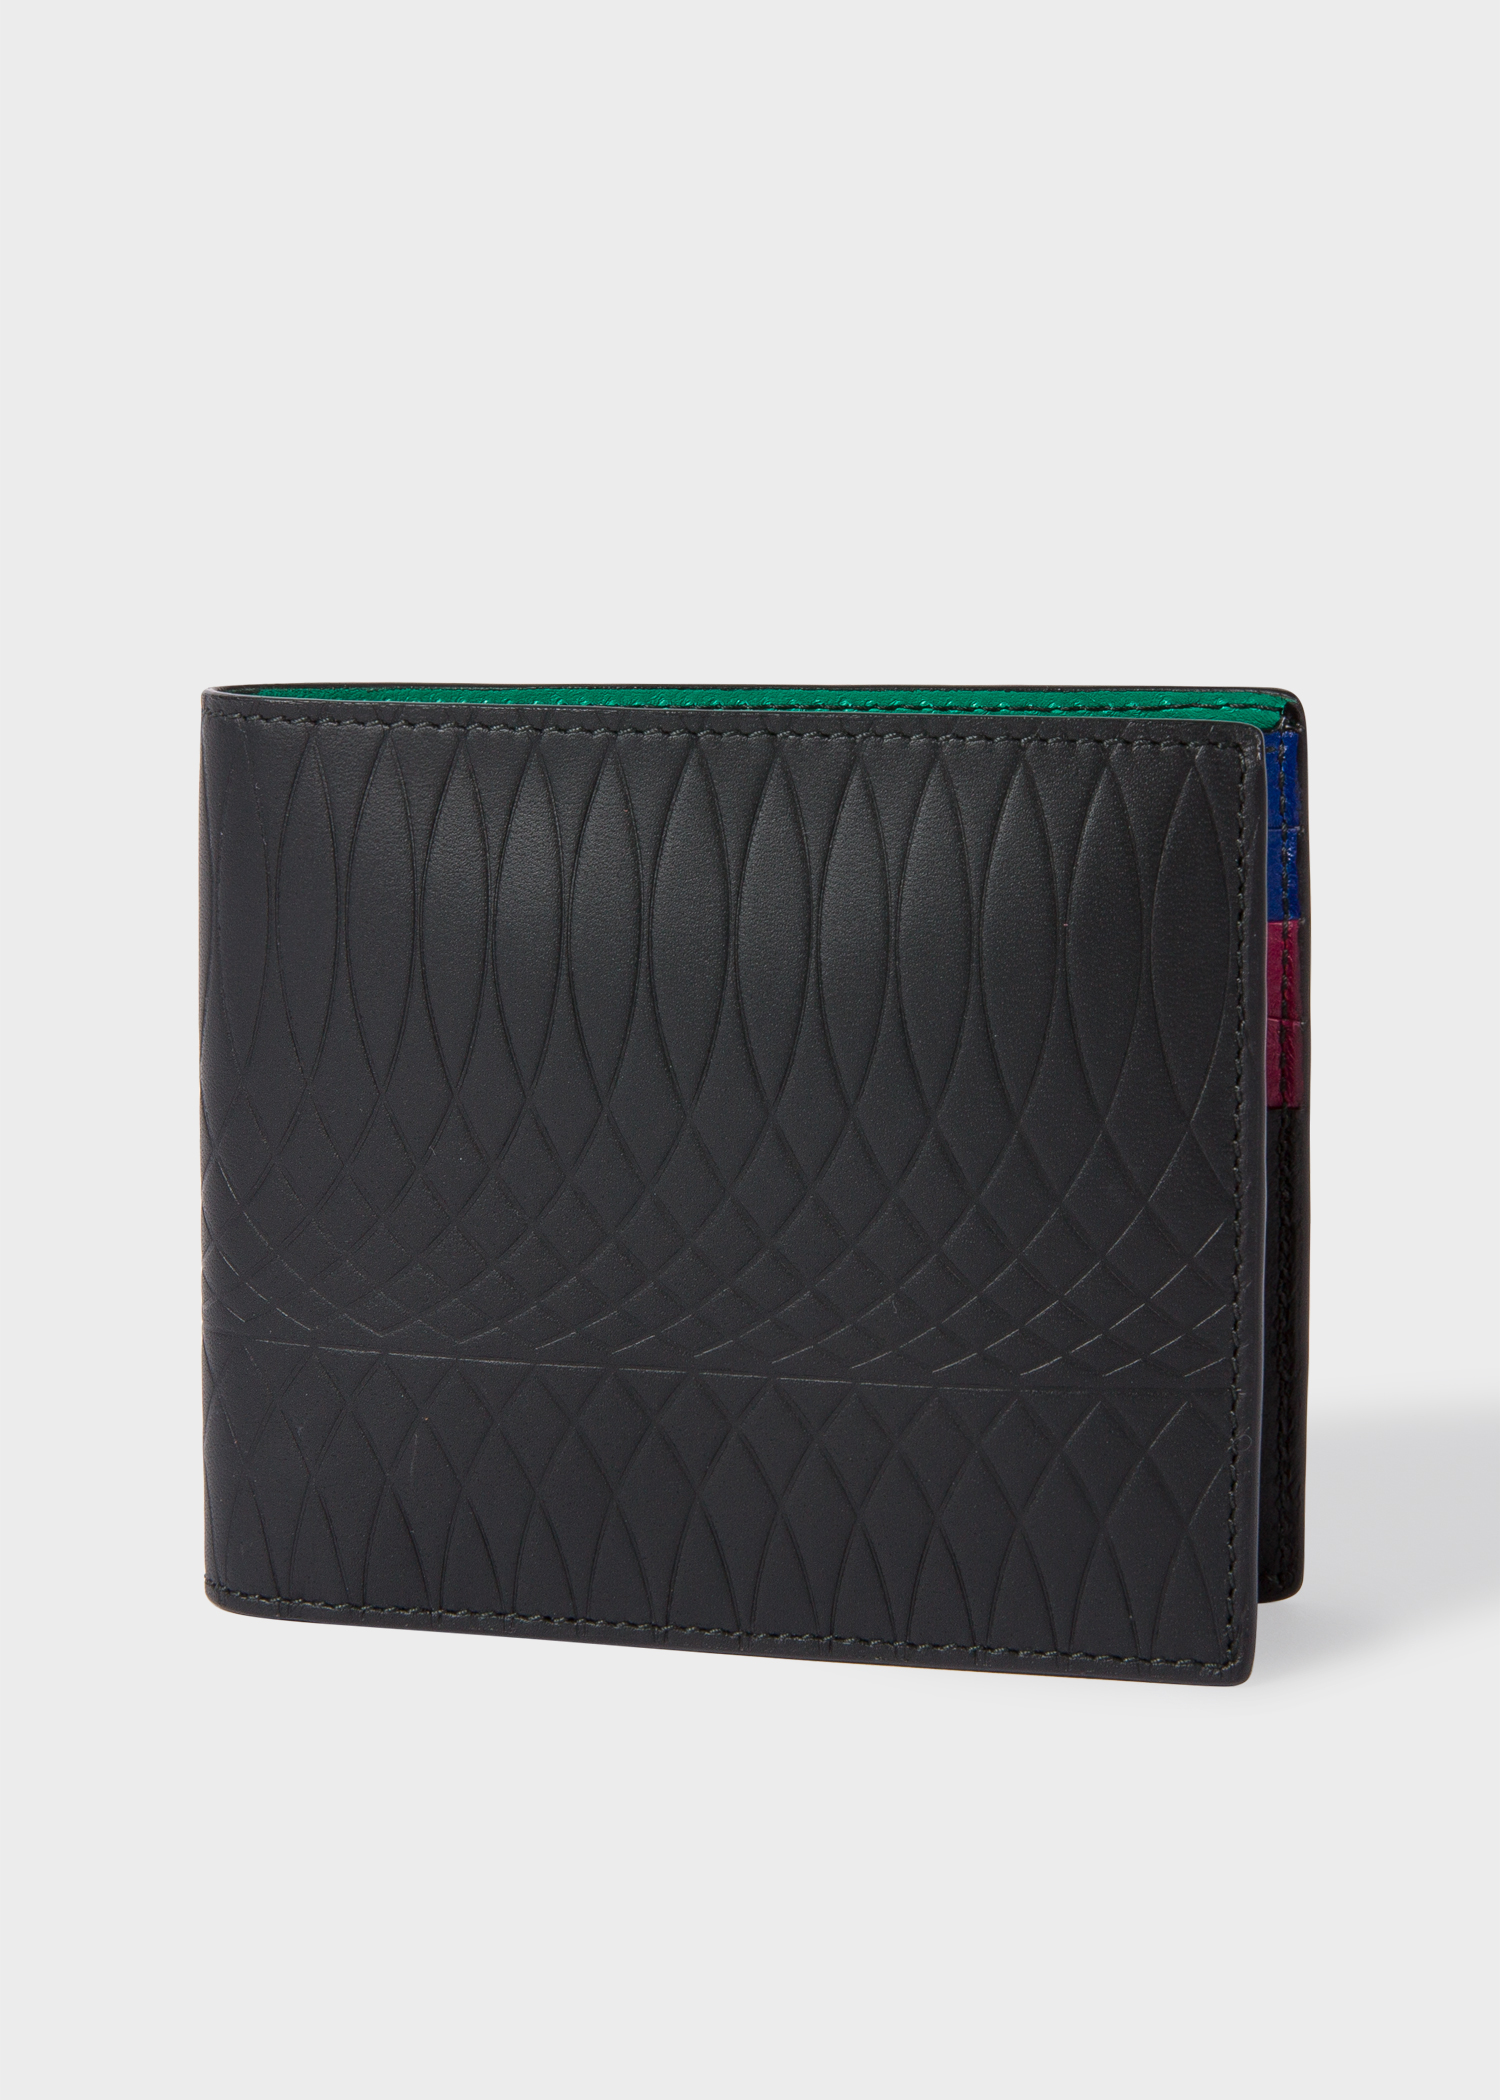 11b2aa43d7bf Paul Smith No.9 - Black Leather Billfold Wallet With Multi-Coloured  Interior   £170.00   Gay Times